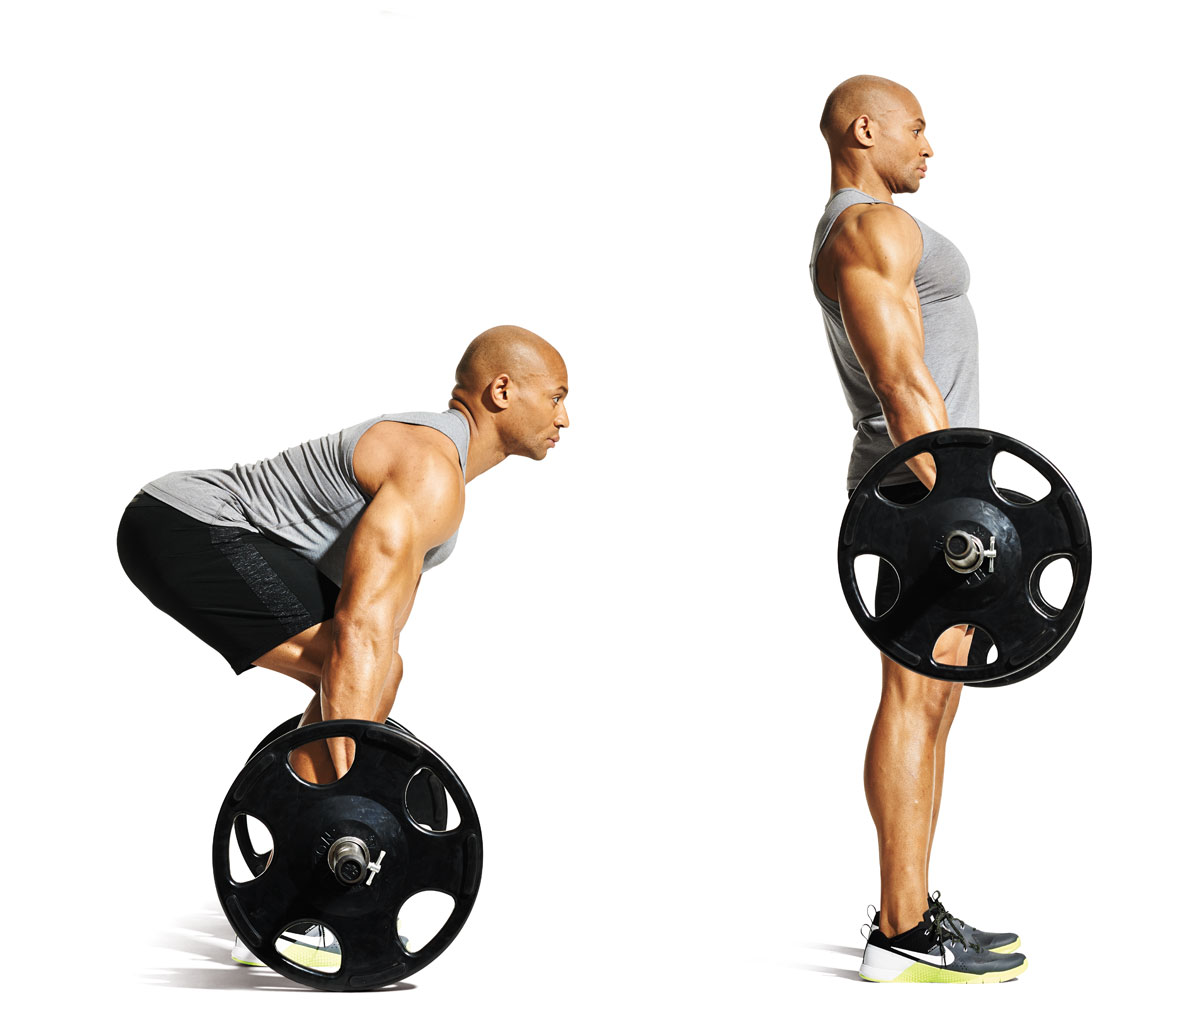 Forum on this topic: How to Build Leg Muscles, how-to-build-leg-muscles/